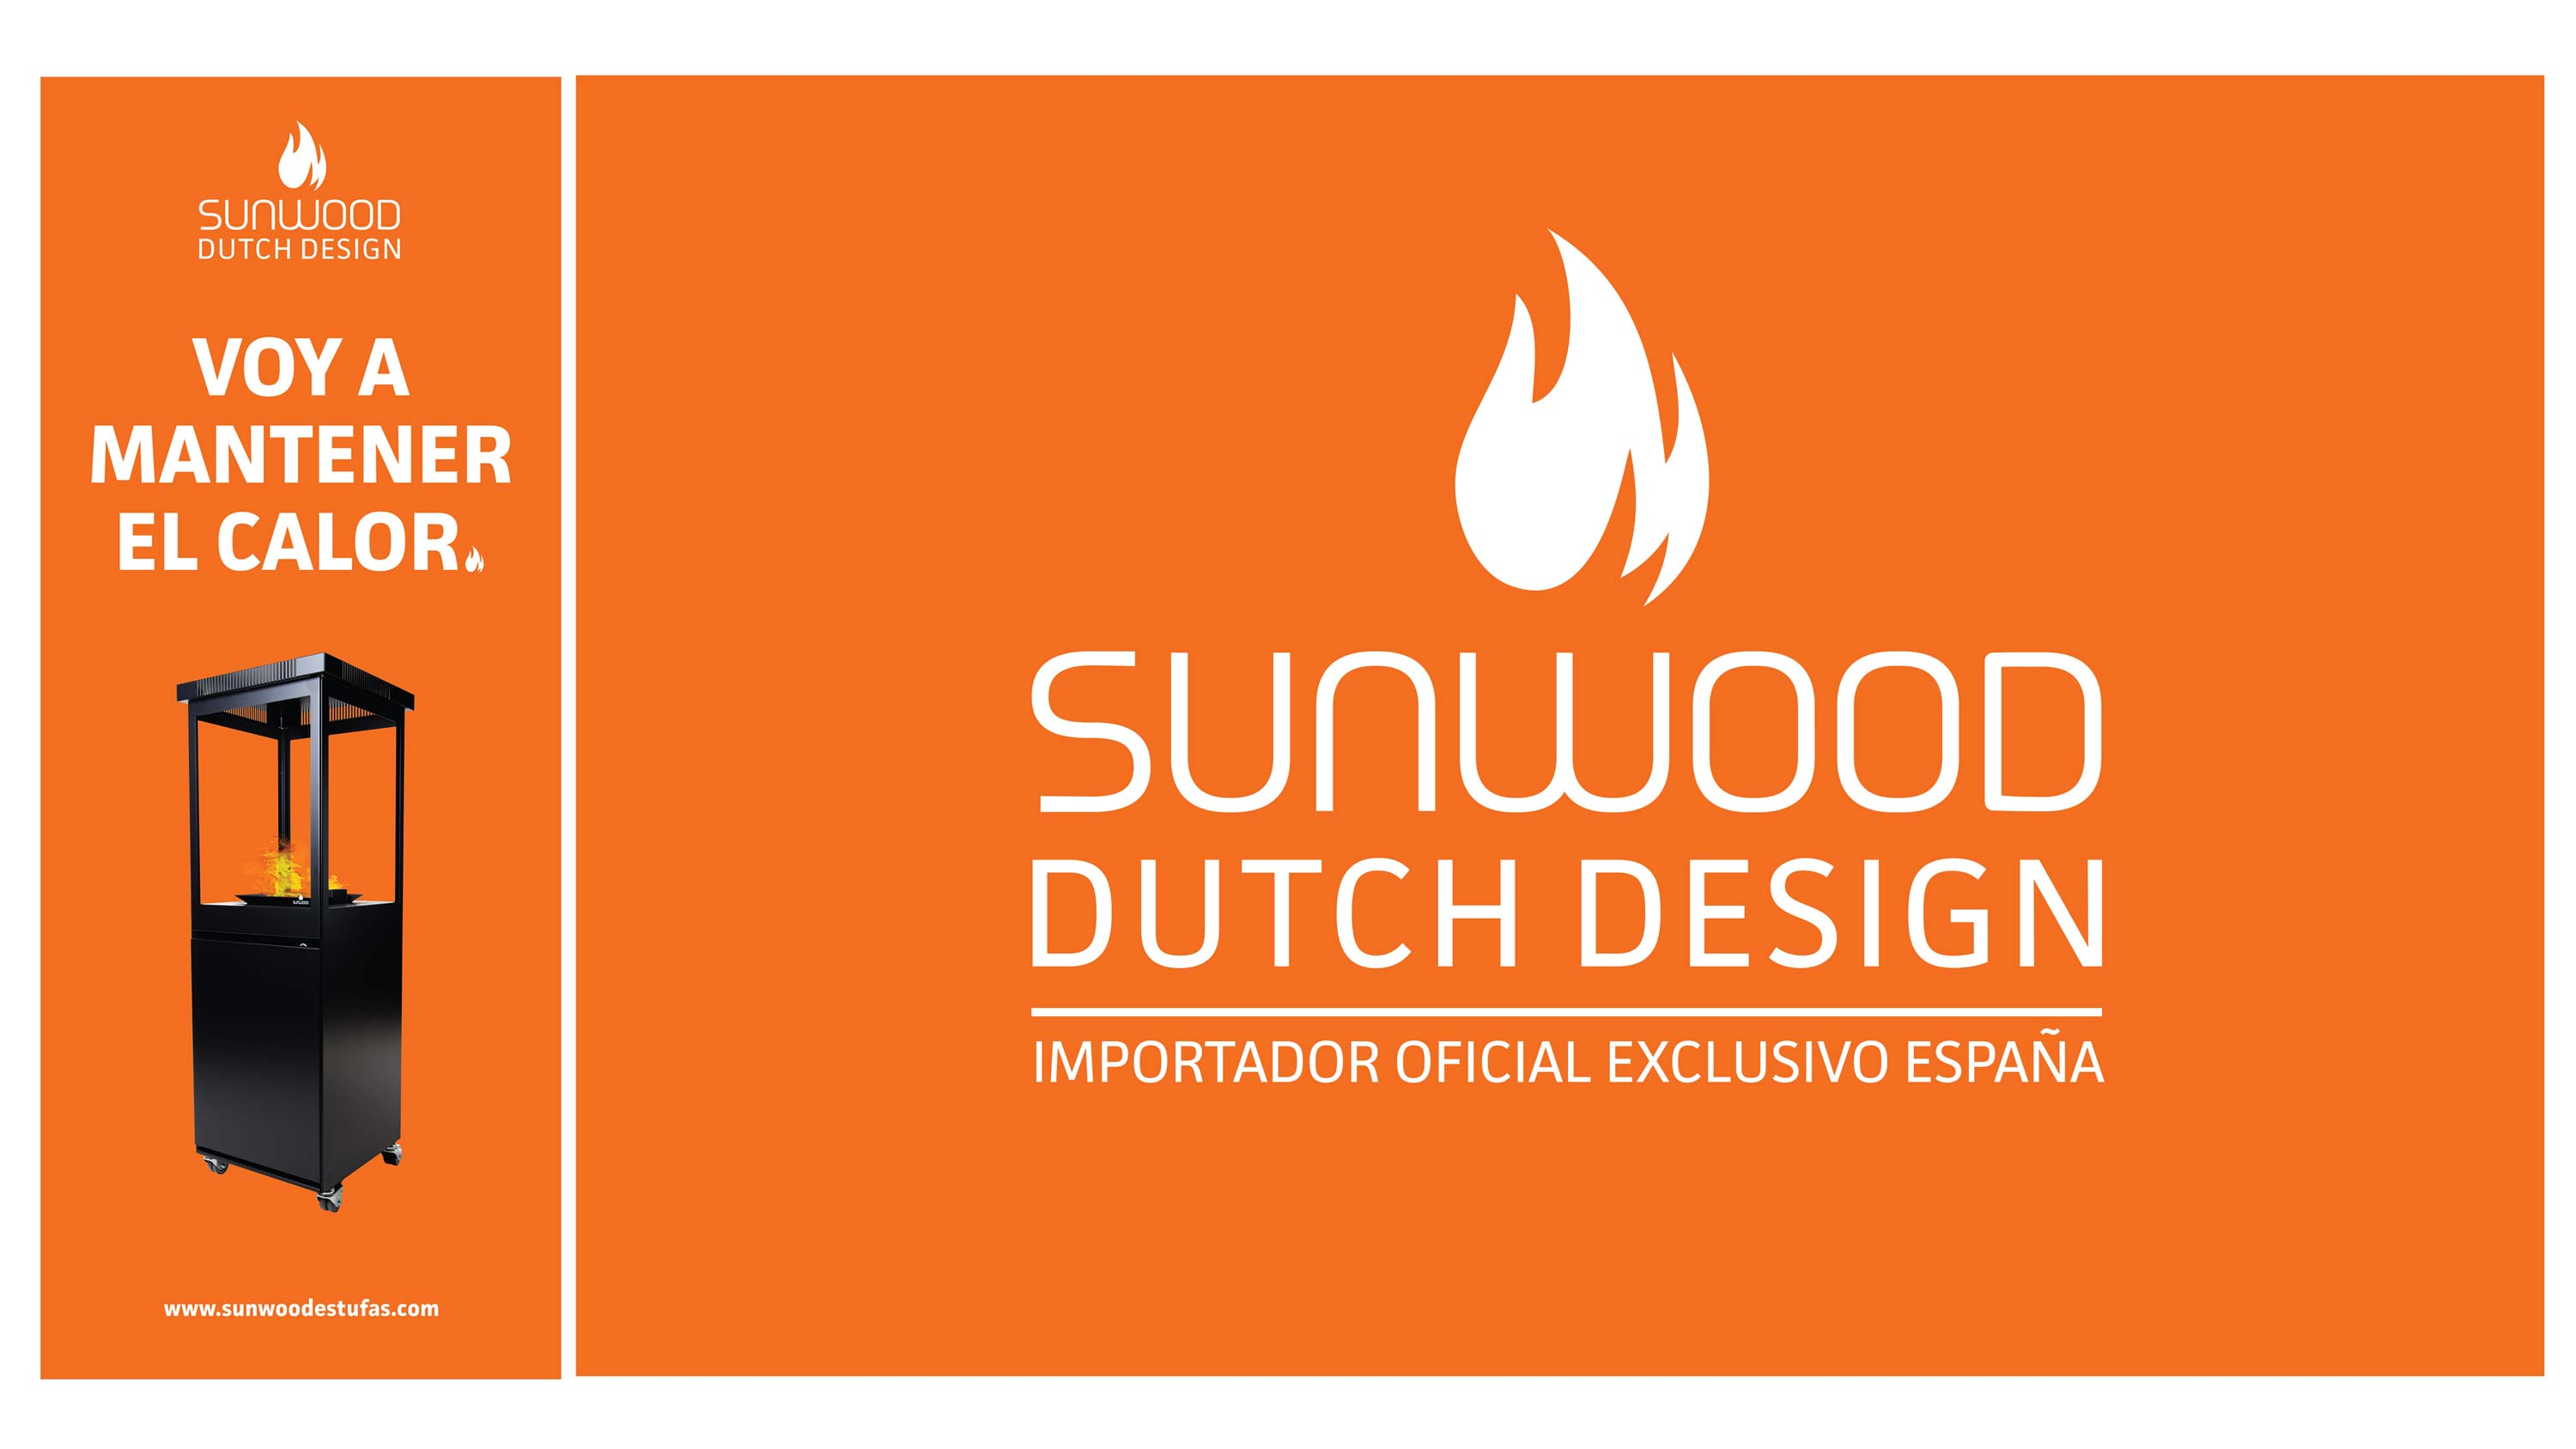 Sunwood Dutch Design, Mixus studio